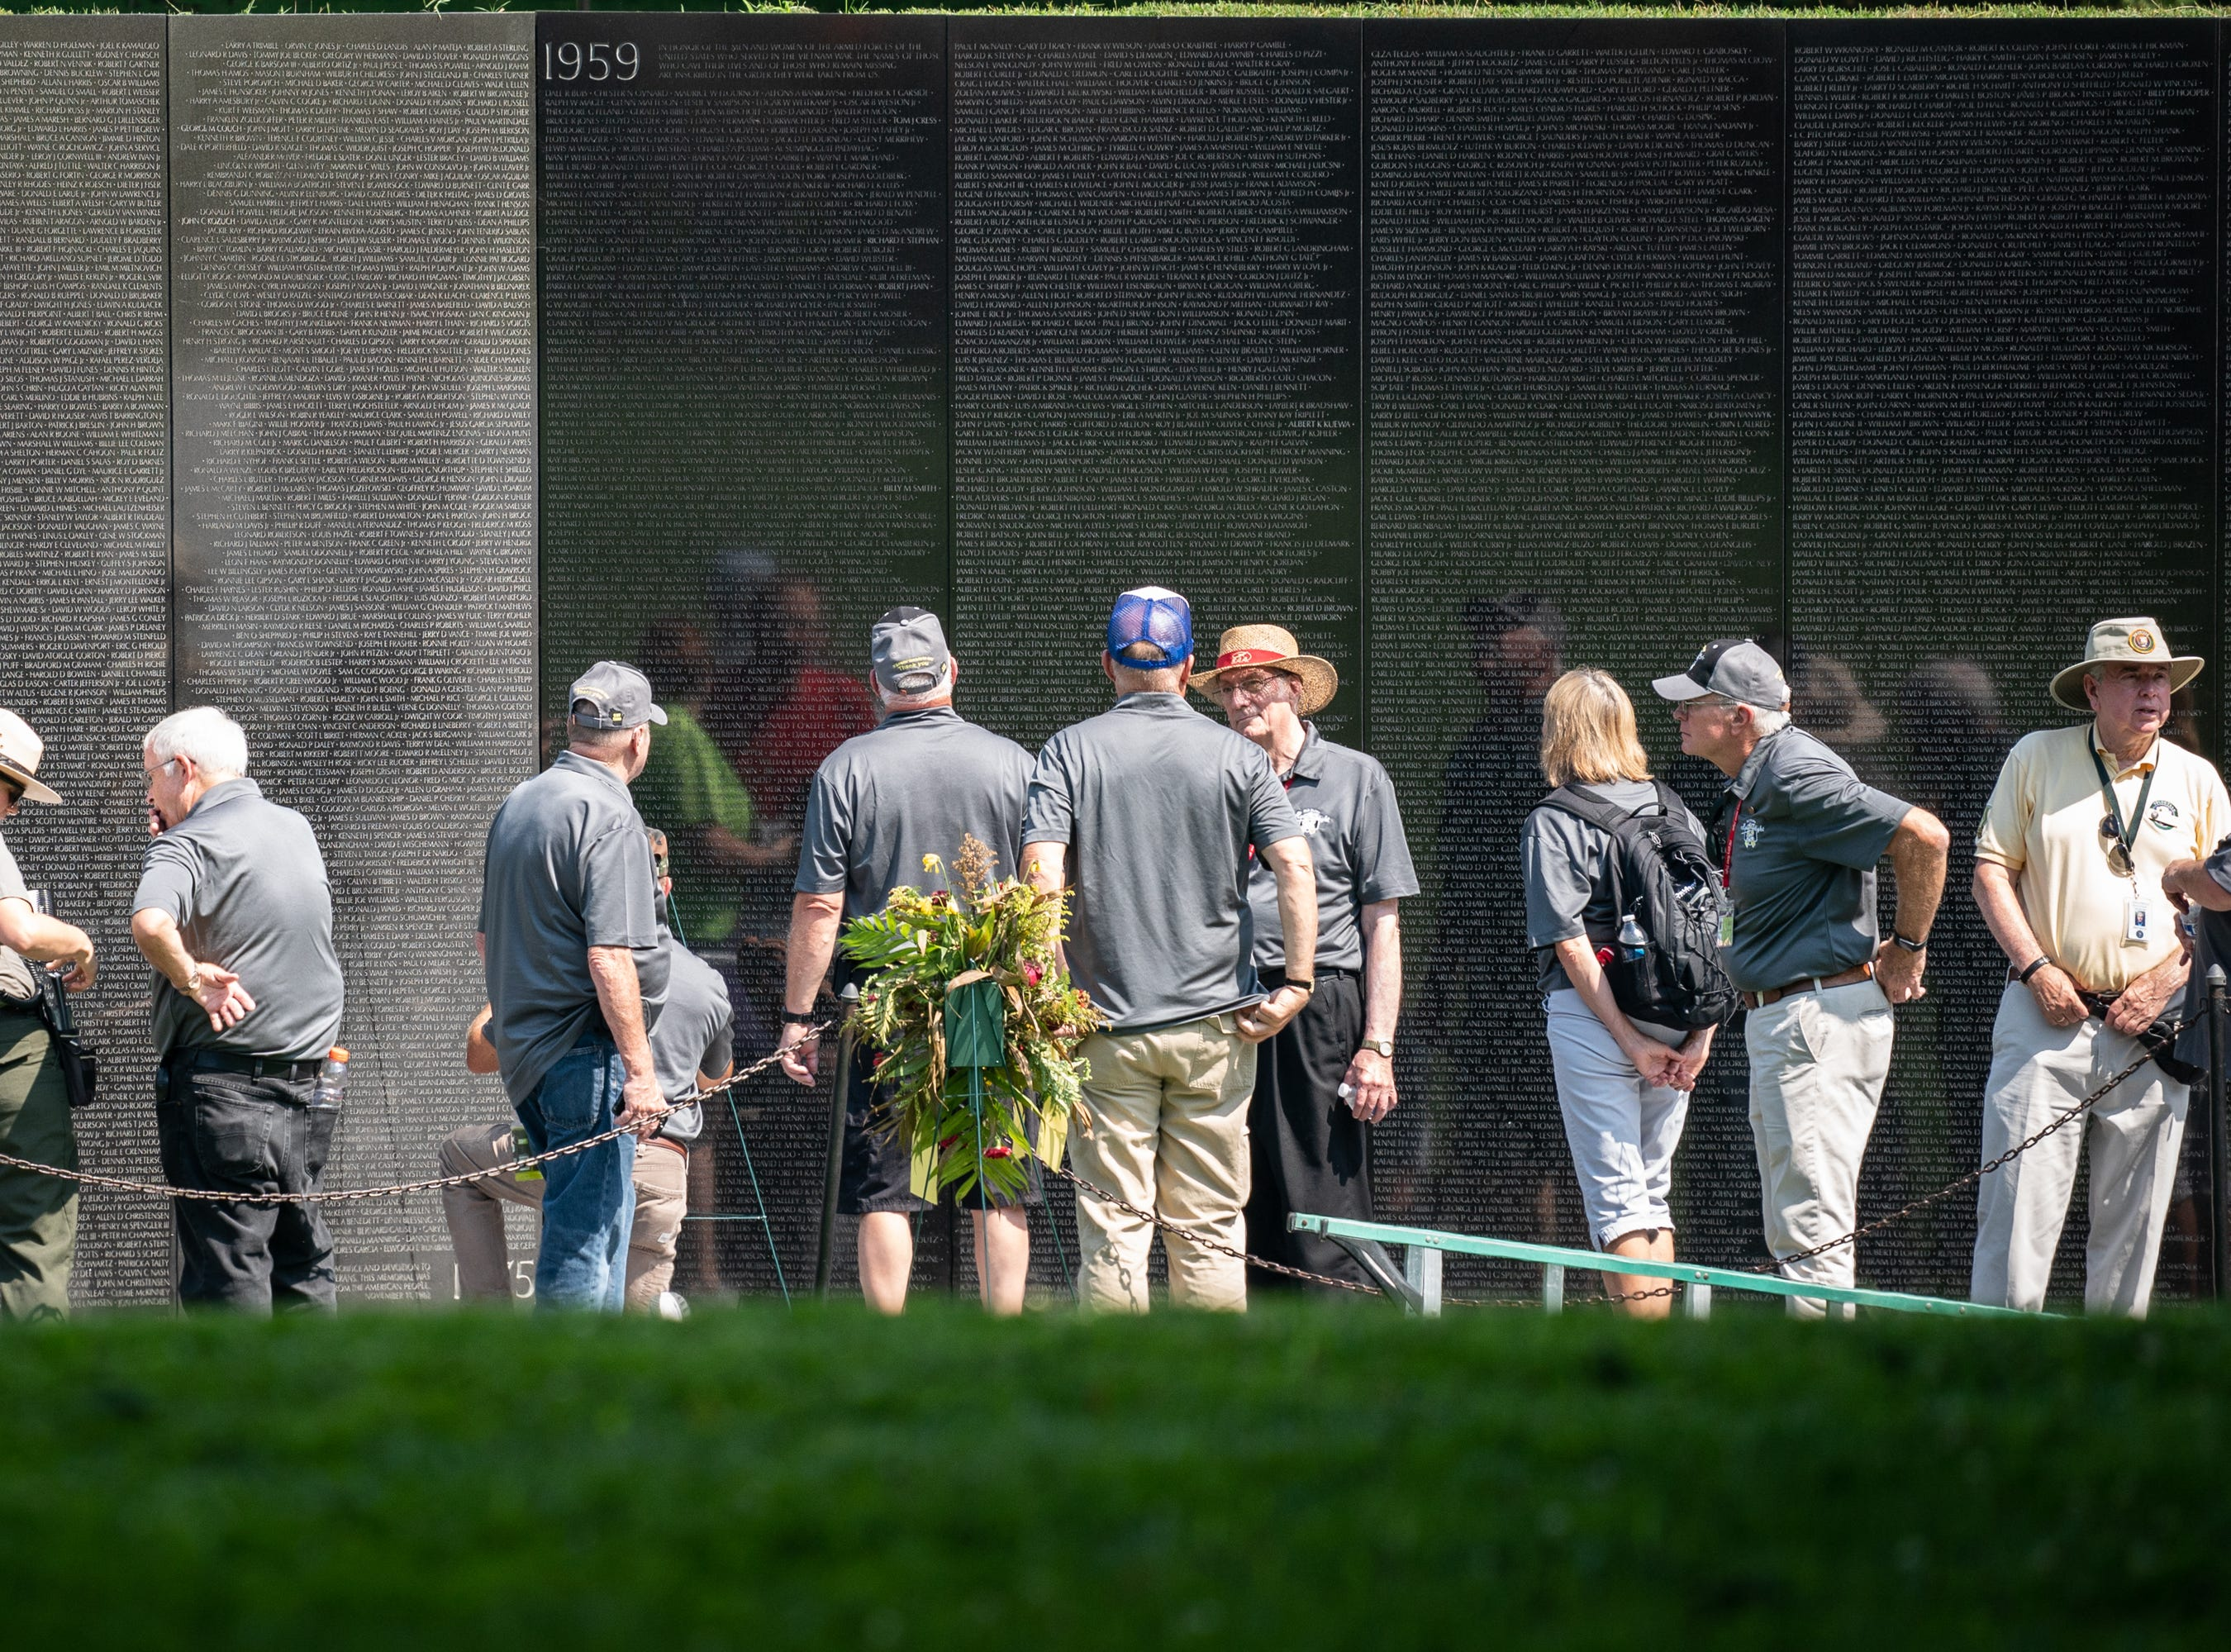 Veterans gather at the Vietnam Veterans Memorial in Washington, D.C.., as part of the July 27 Yellow Ribbon Honor Flight from the EAA Convention in Oshkosh. The group visited the memorial, The Smithsonian Museum, Arlington National Cemetery and the Air Force Memorial before returning to AirVenture for a welcome-home ceremony.